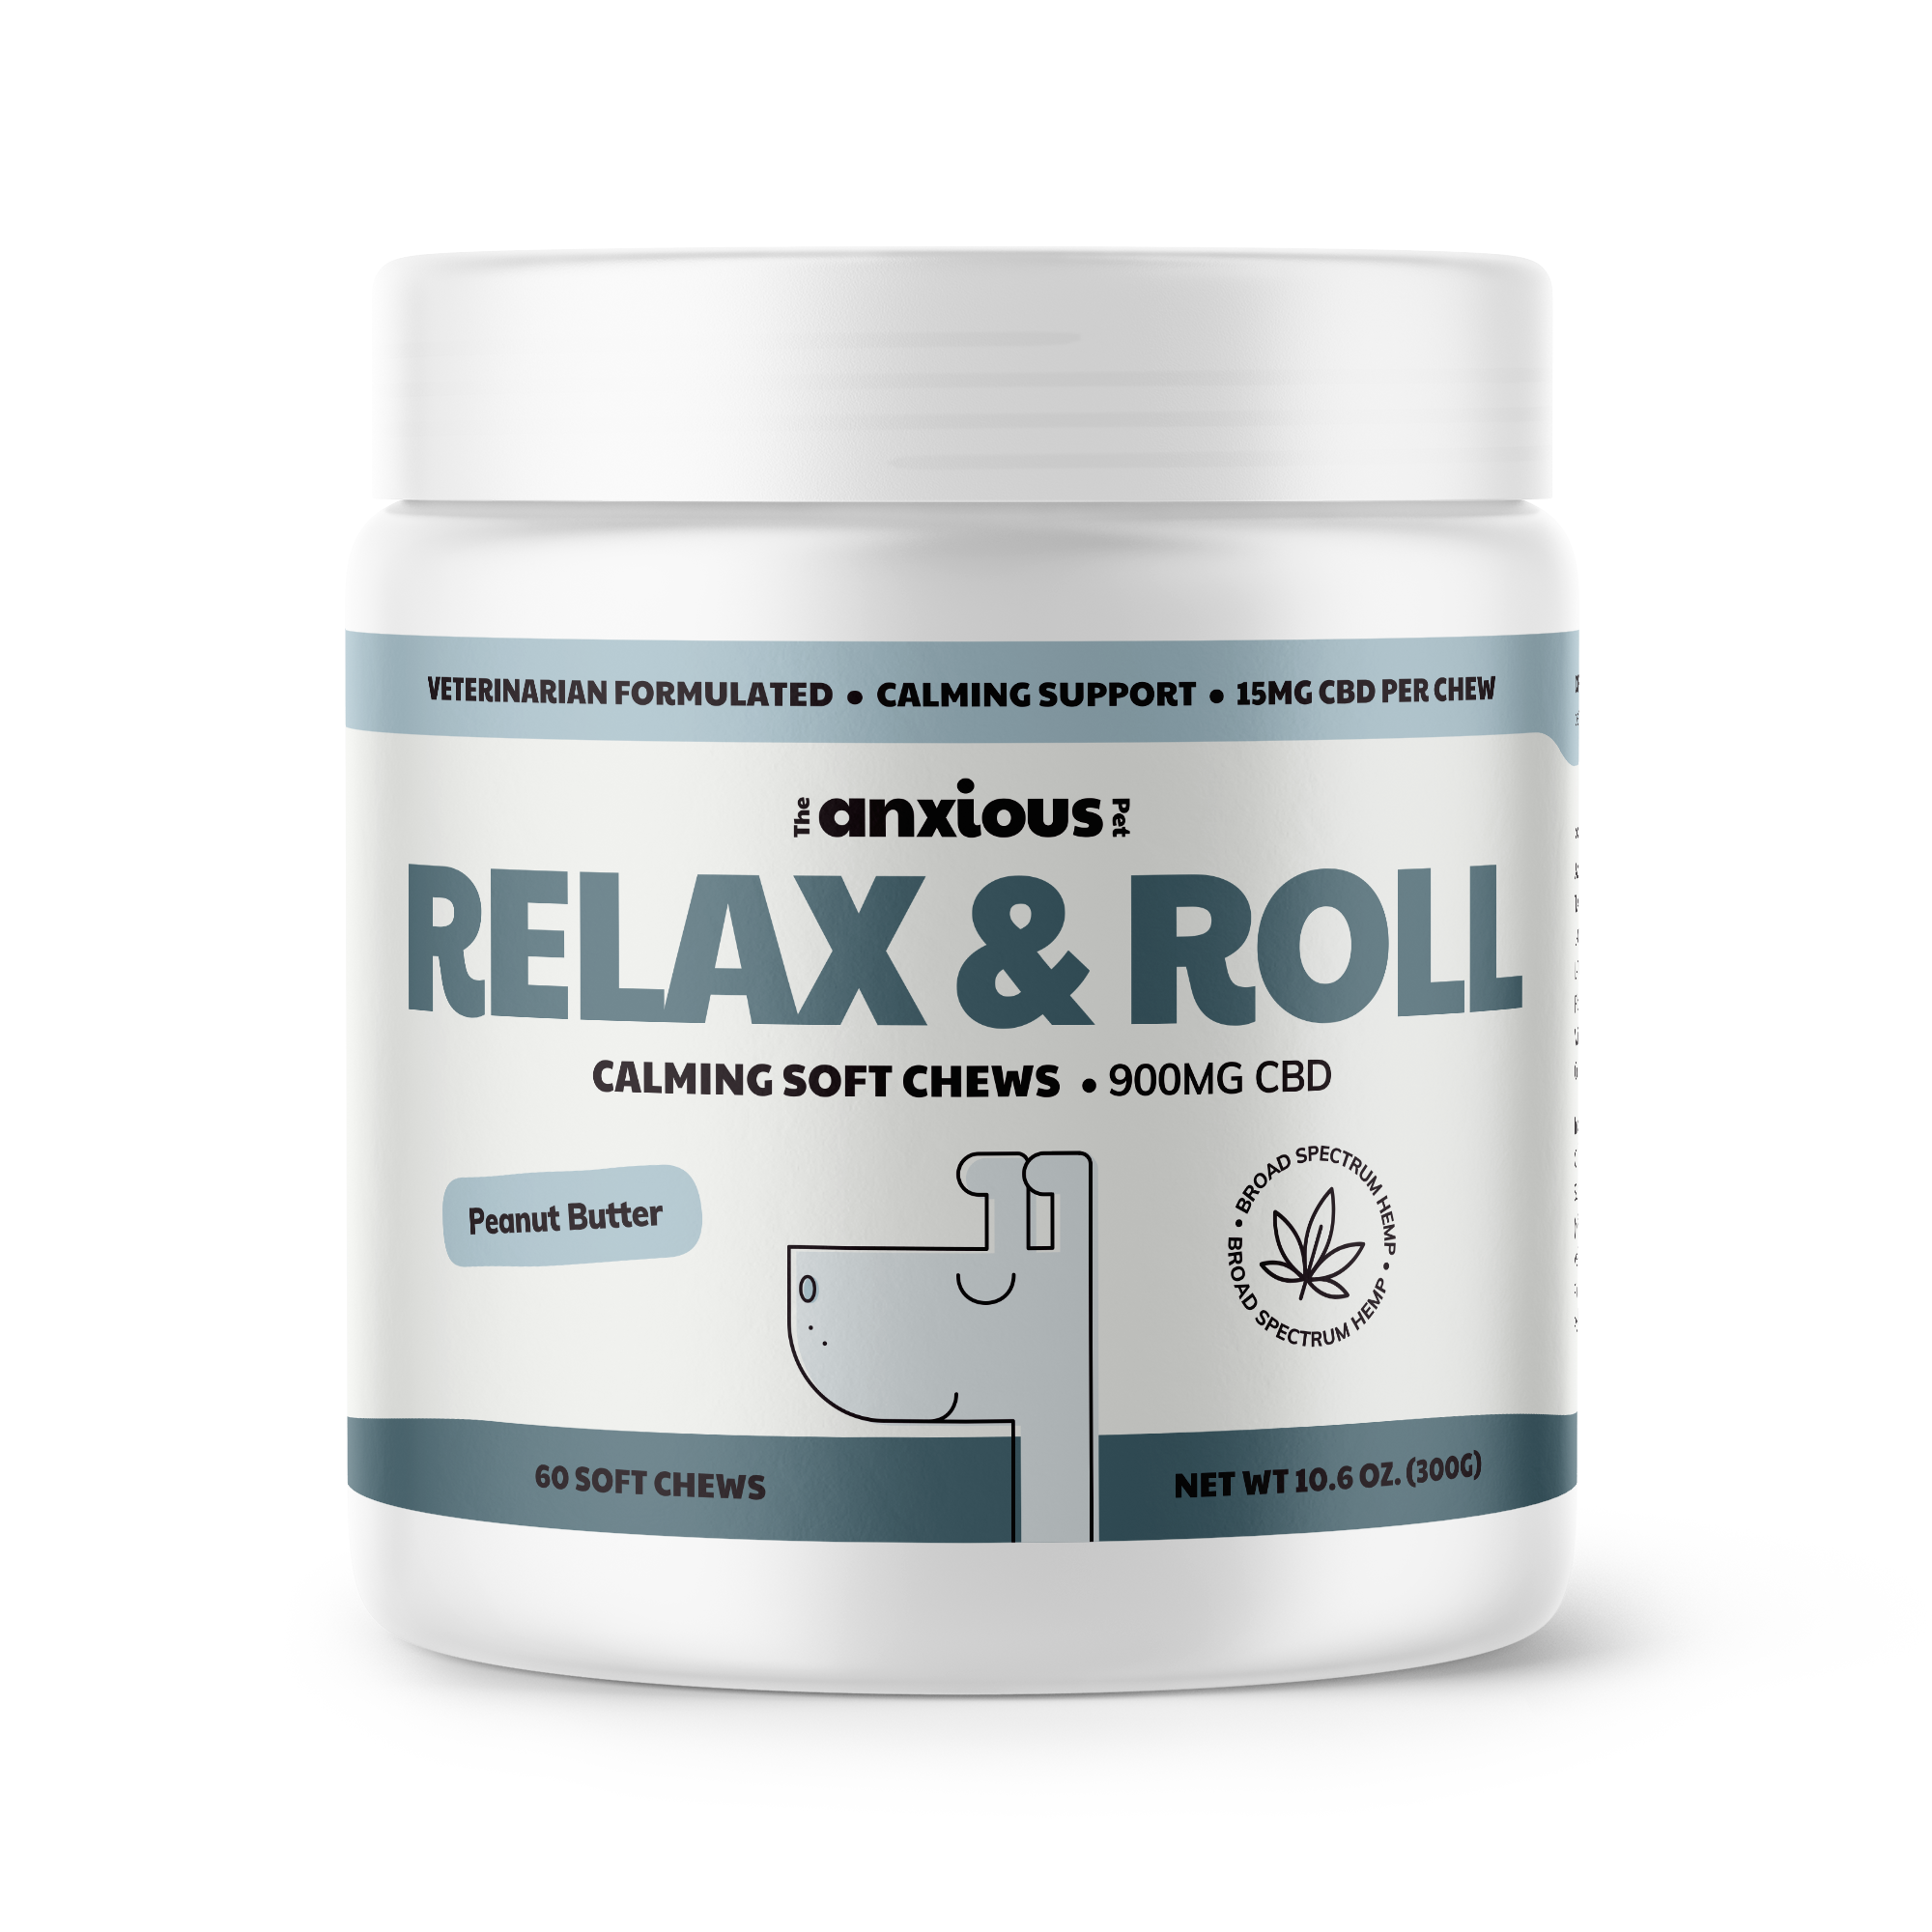 Relax & Roll Soft Chews with CBD